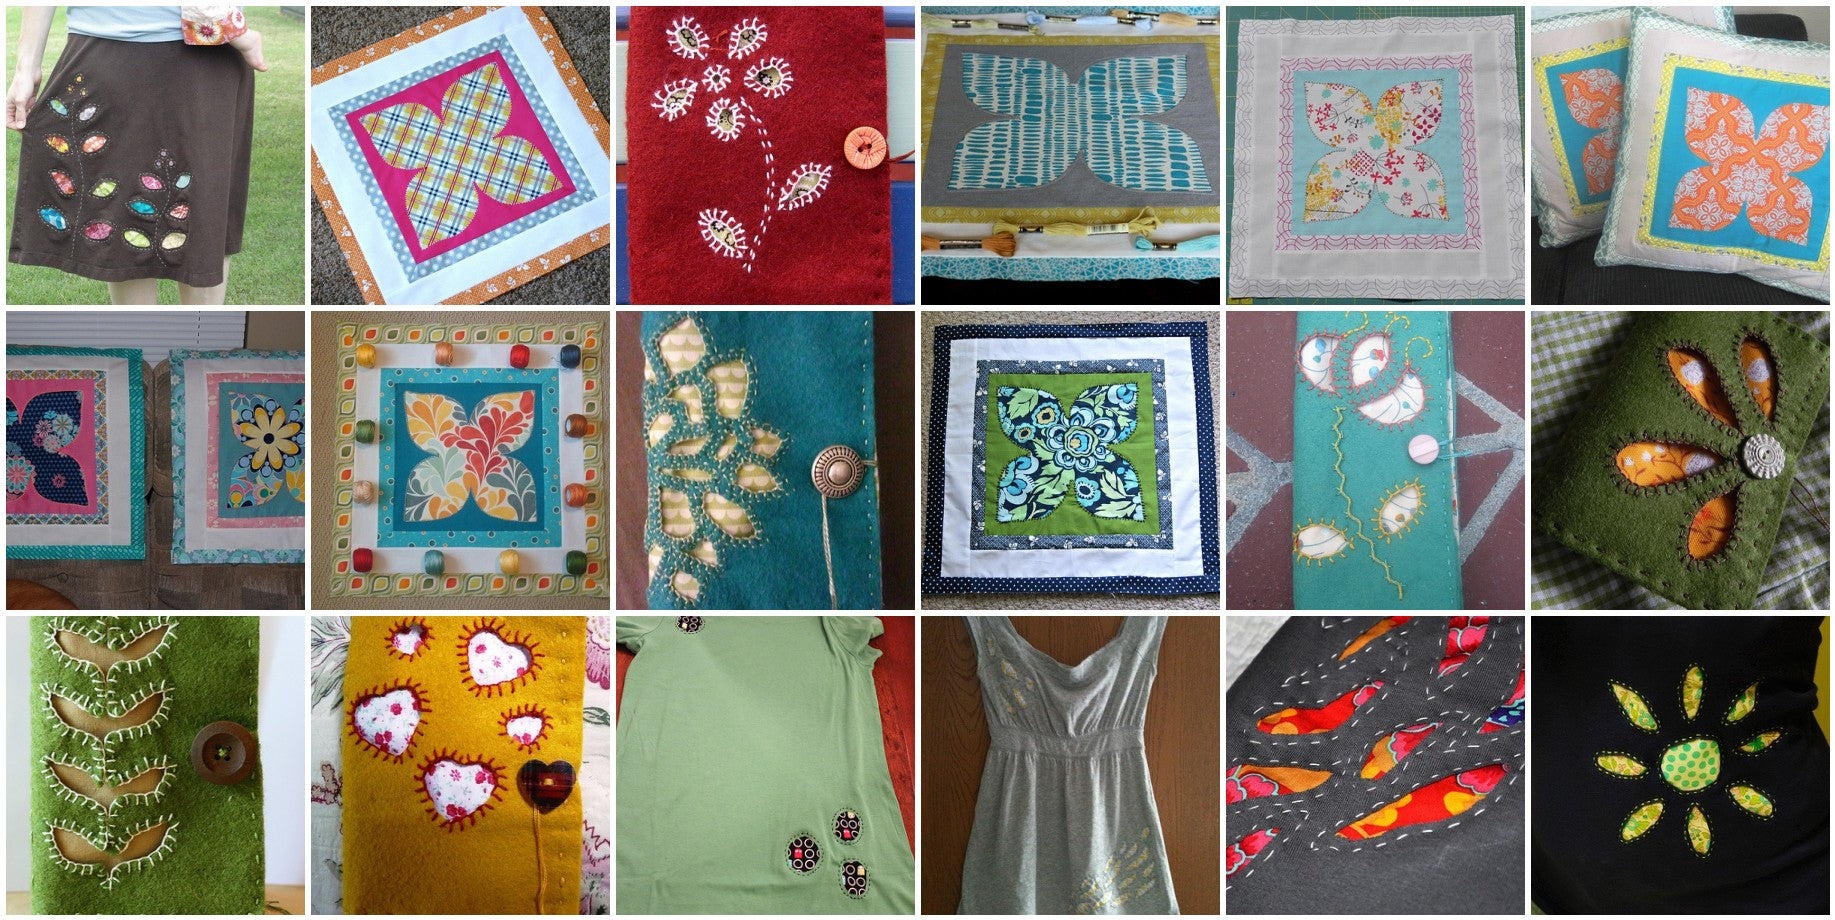 Some Beautiful Projects from Handstitched Class at Stitched in Color